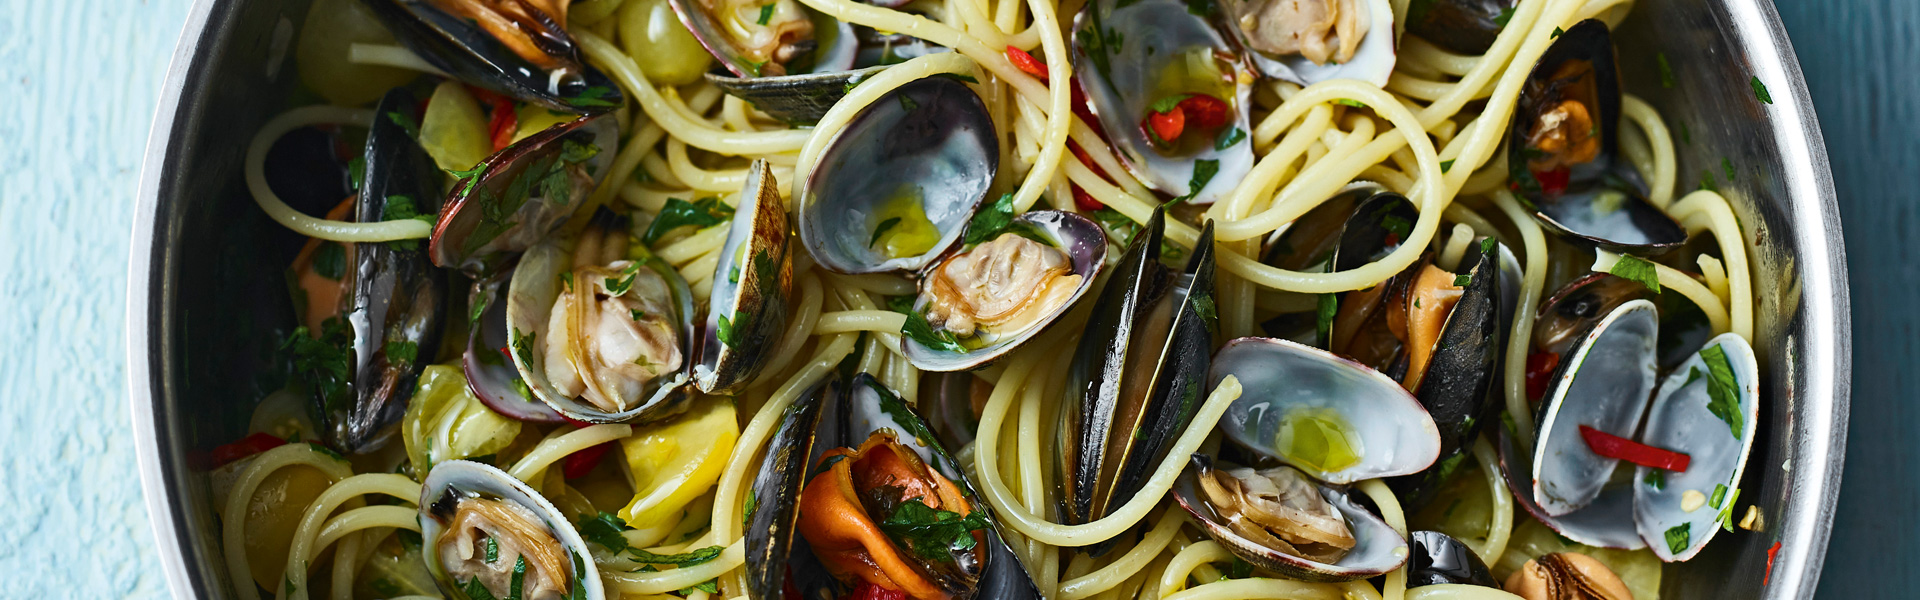 Gino D'Acampo: Spaghetti with Clams & Mussels Recipe